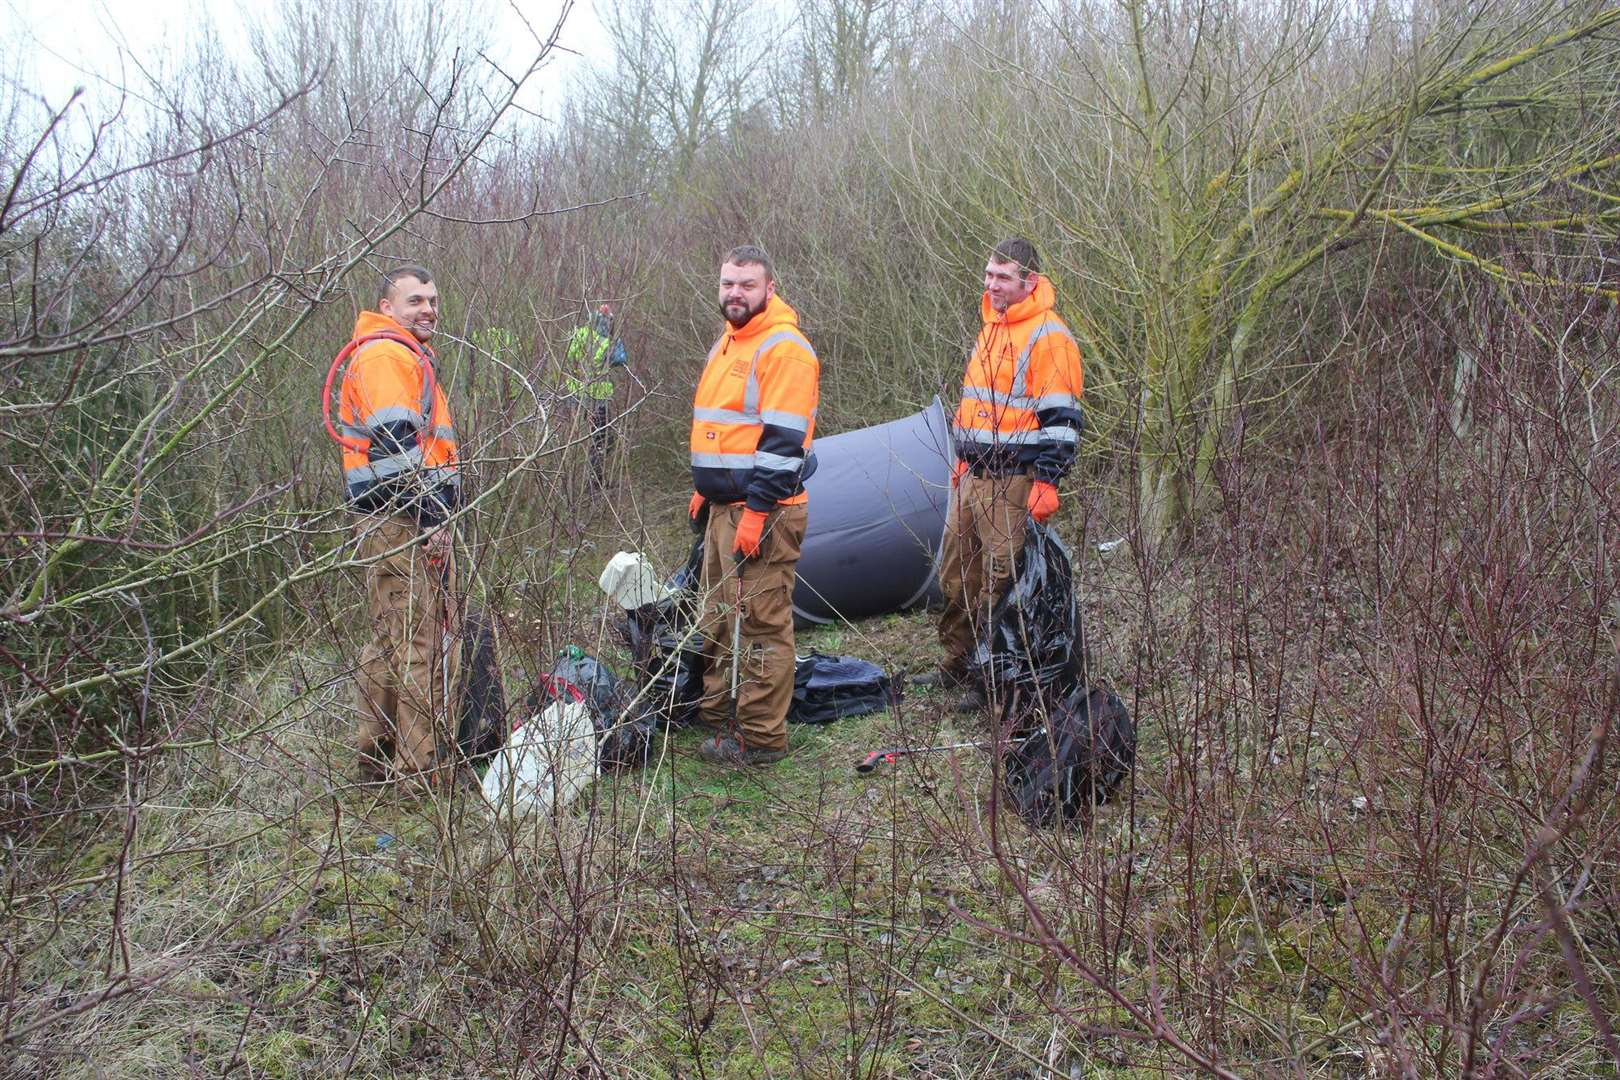 Team from Hollyoak Landscaping cleaning up disgarded litter on Stumps Lane, Spalding on Saturday (image provided by Flytipping Watch) (7412037)